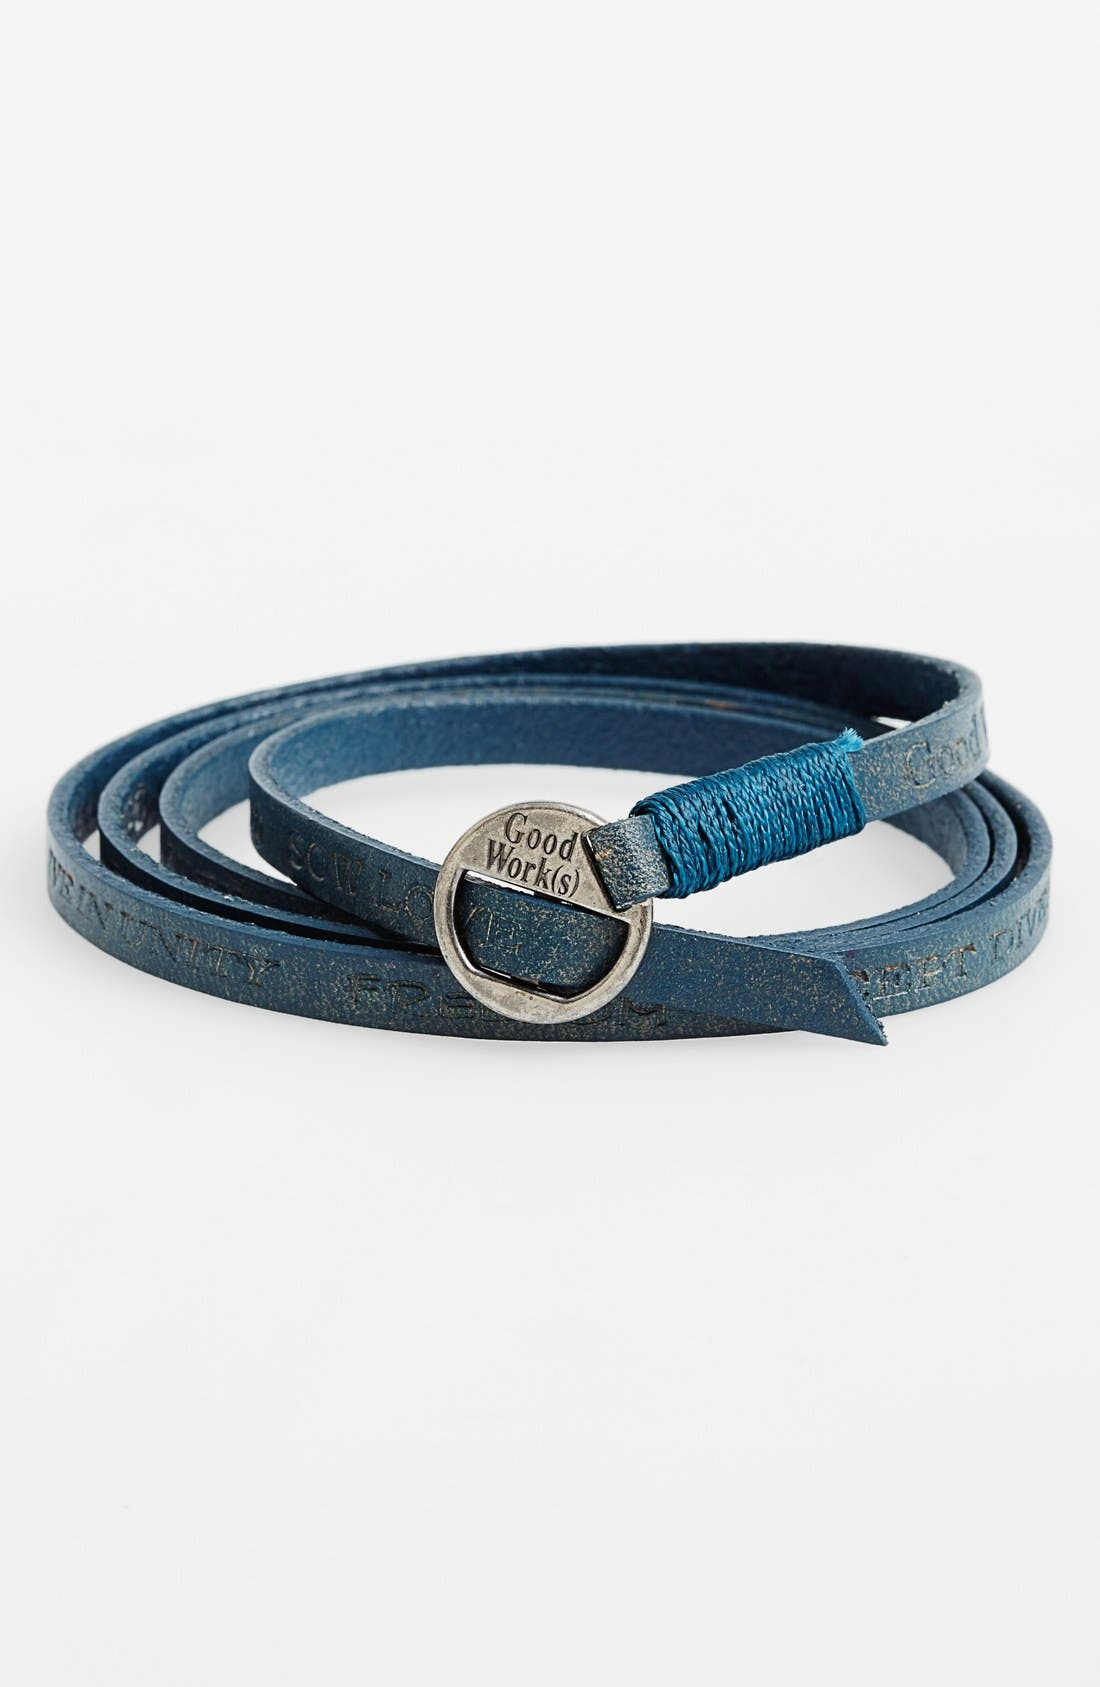 Main Image - Good Work(s) Make A Difference 'Courage' Leather Wrap Bracelet